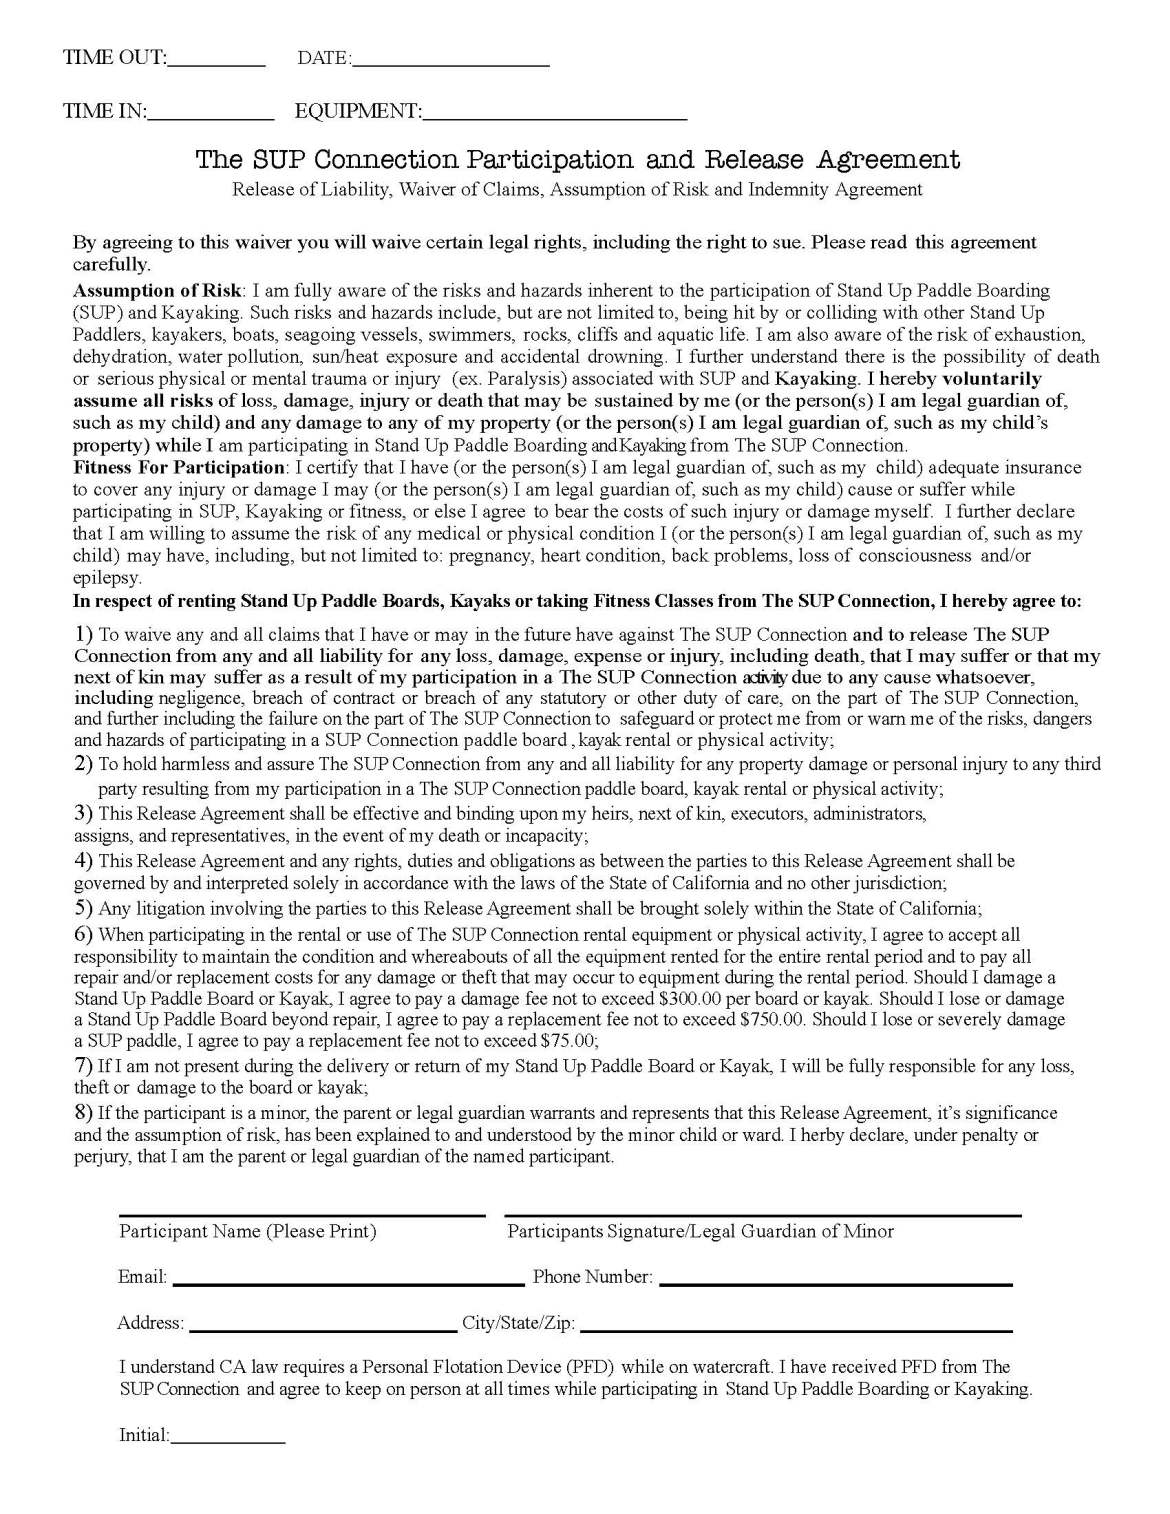 The SUP Connection waiver form